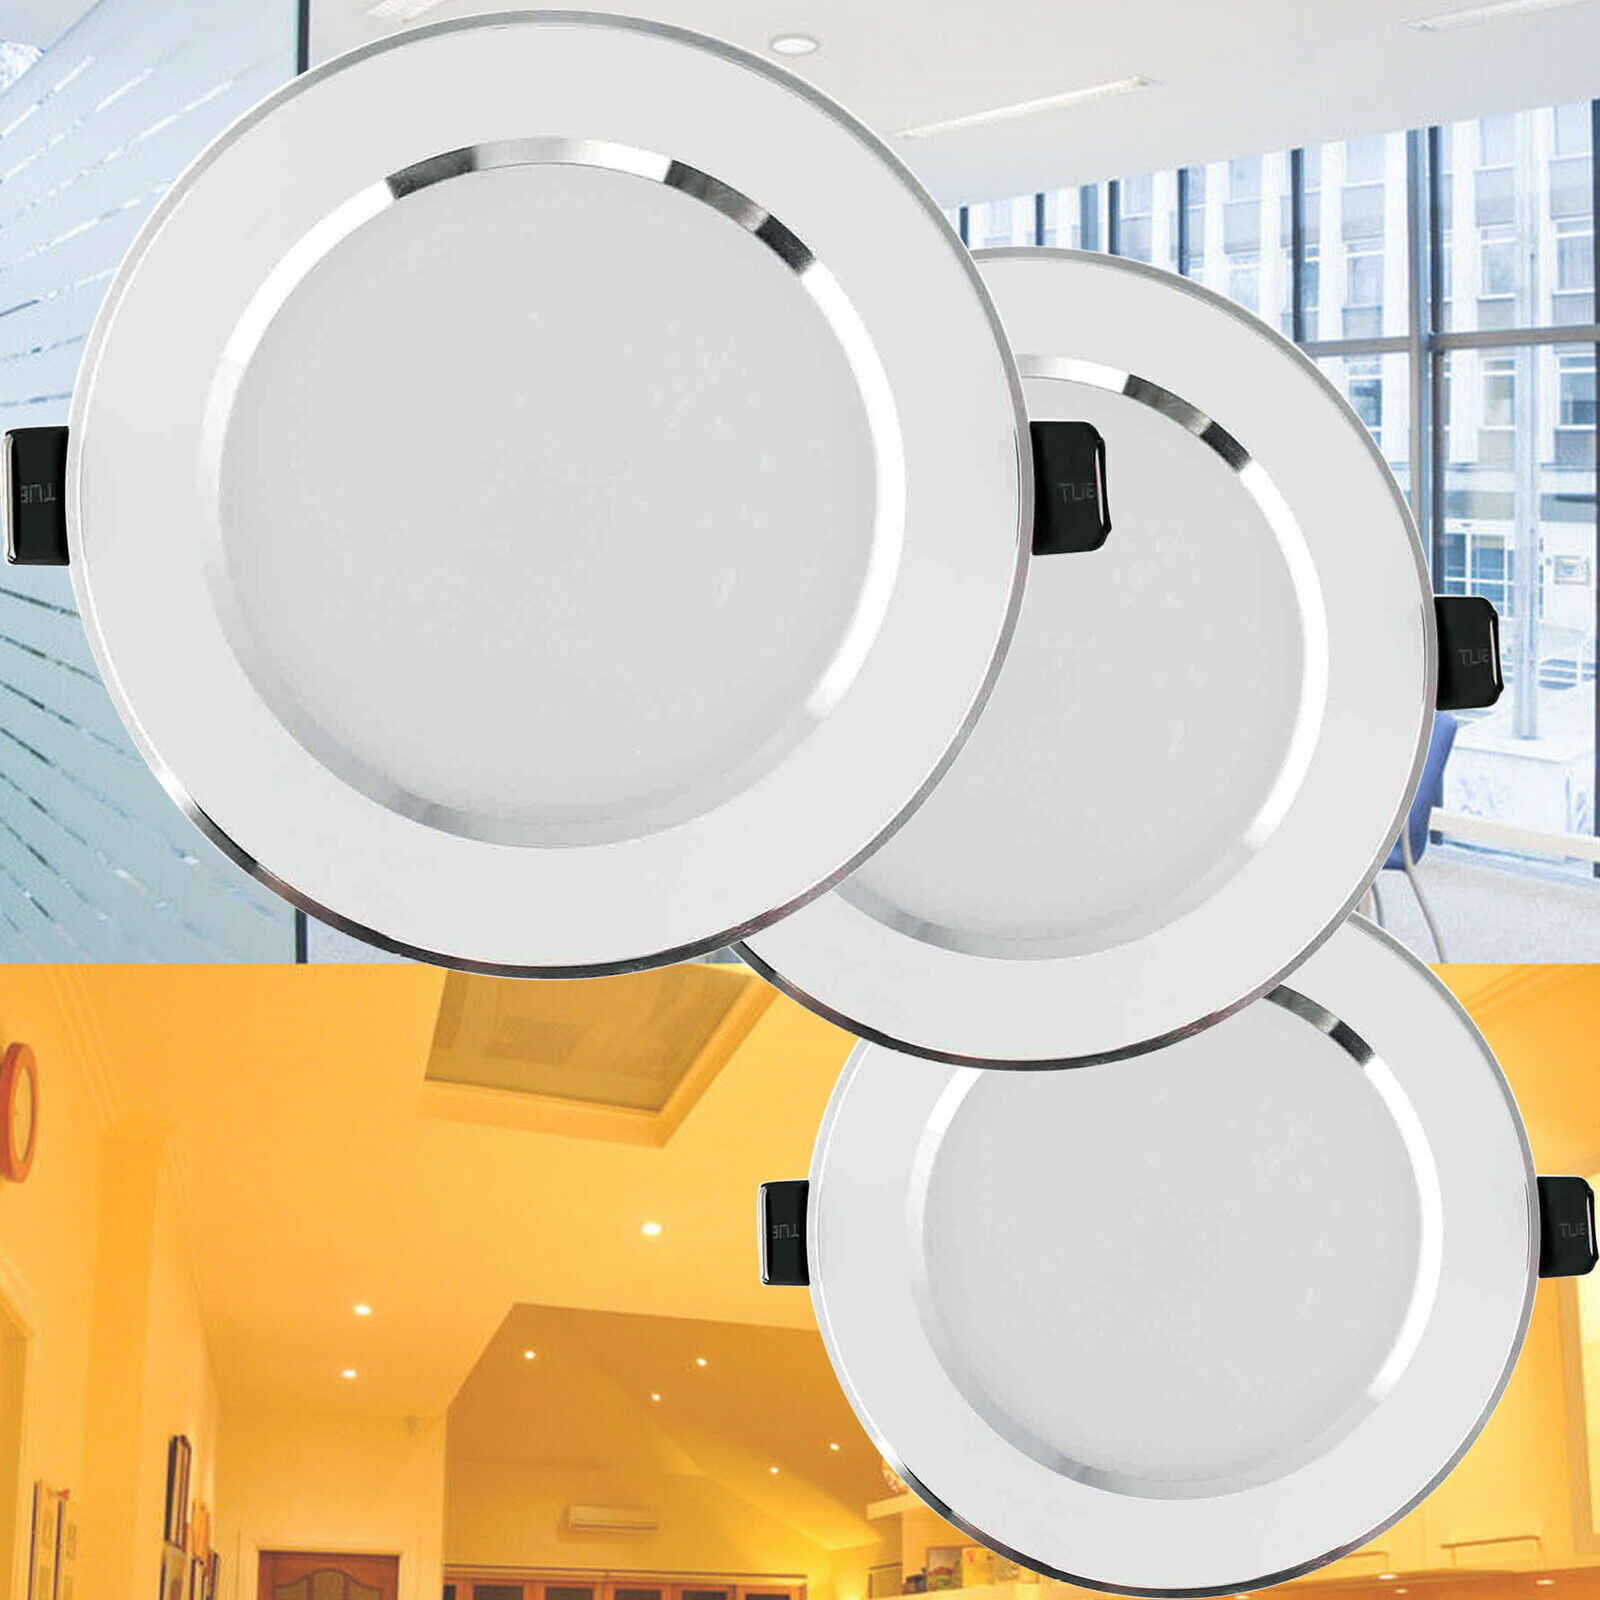 Image of: Dimmable 8w 15w 12w 9w 7w 5w 3w Led Recessed Ceiling Light Downlight Lamp 110v 220v With Driver Indoor Lighting Lamps For Home Led Downlights Aliexpress